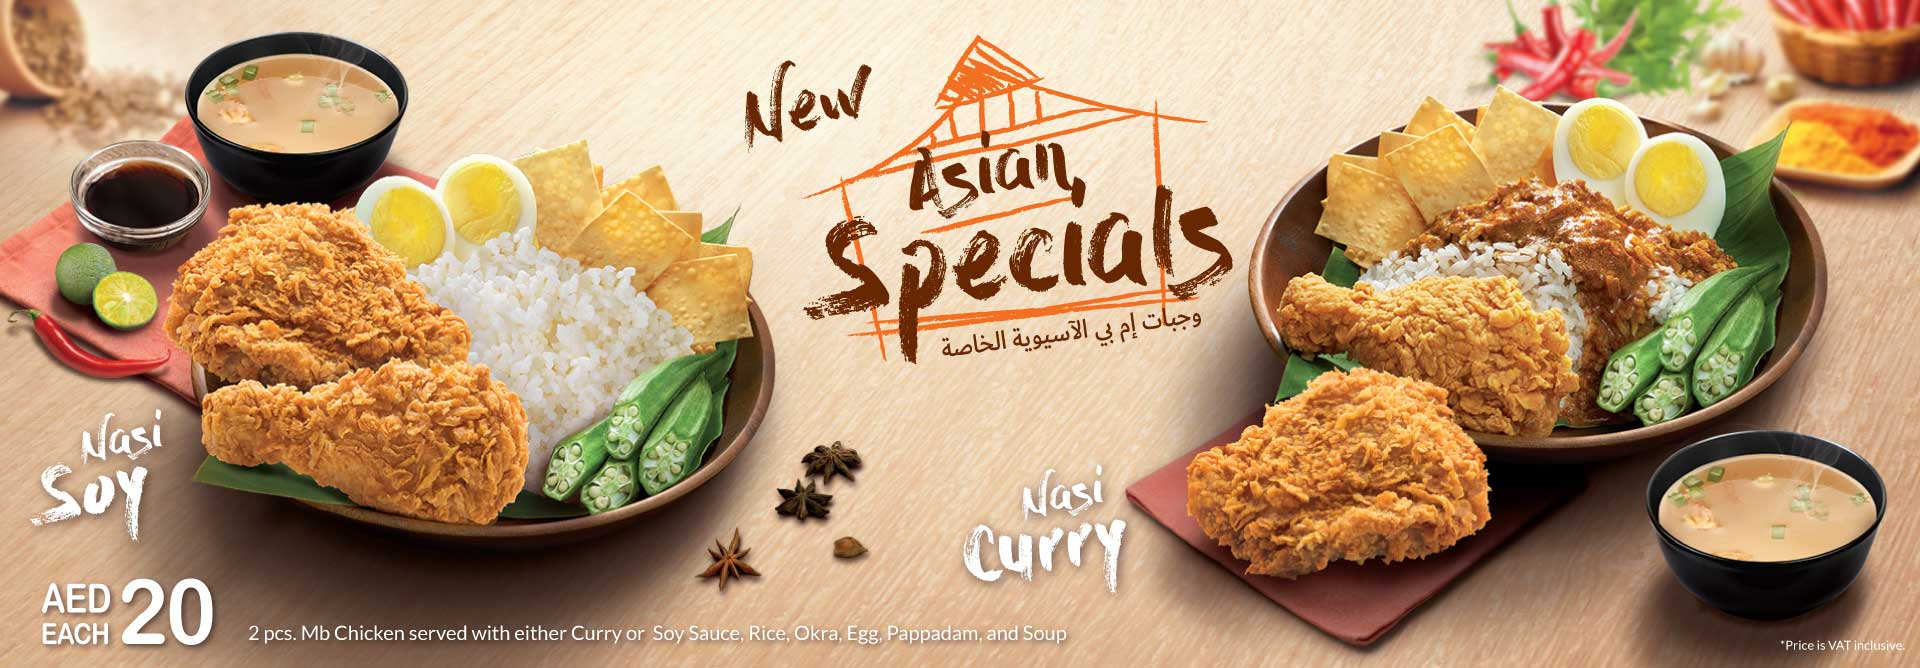 Marrybrown Awesome Value Meal - Dubaisavers